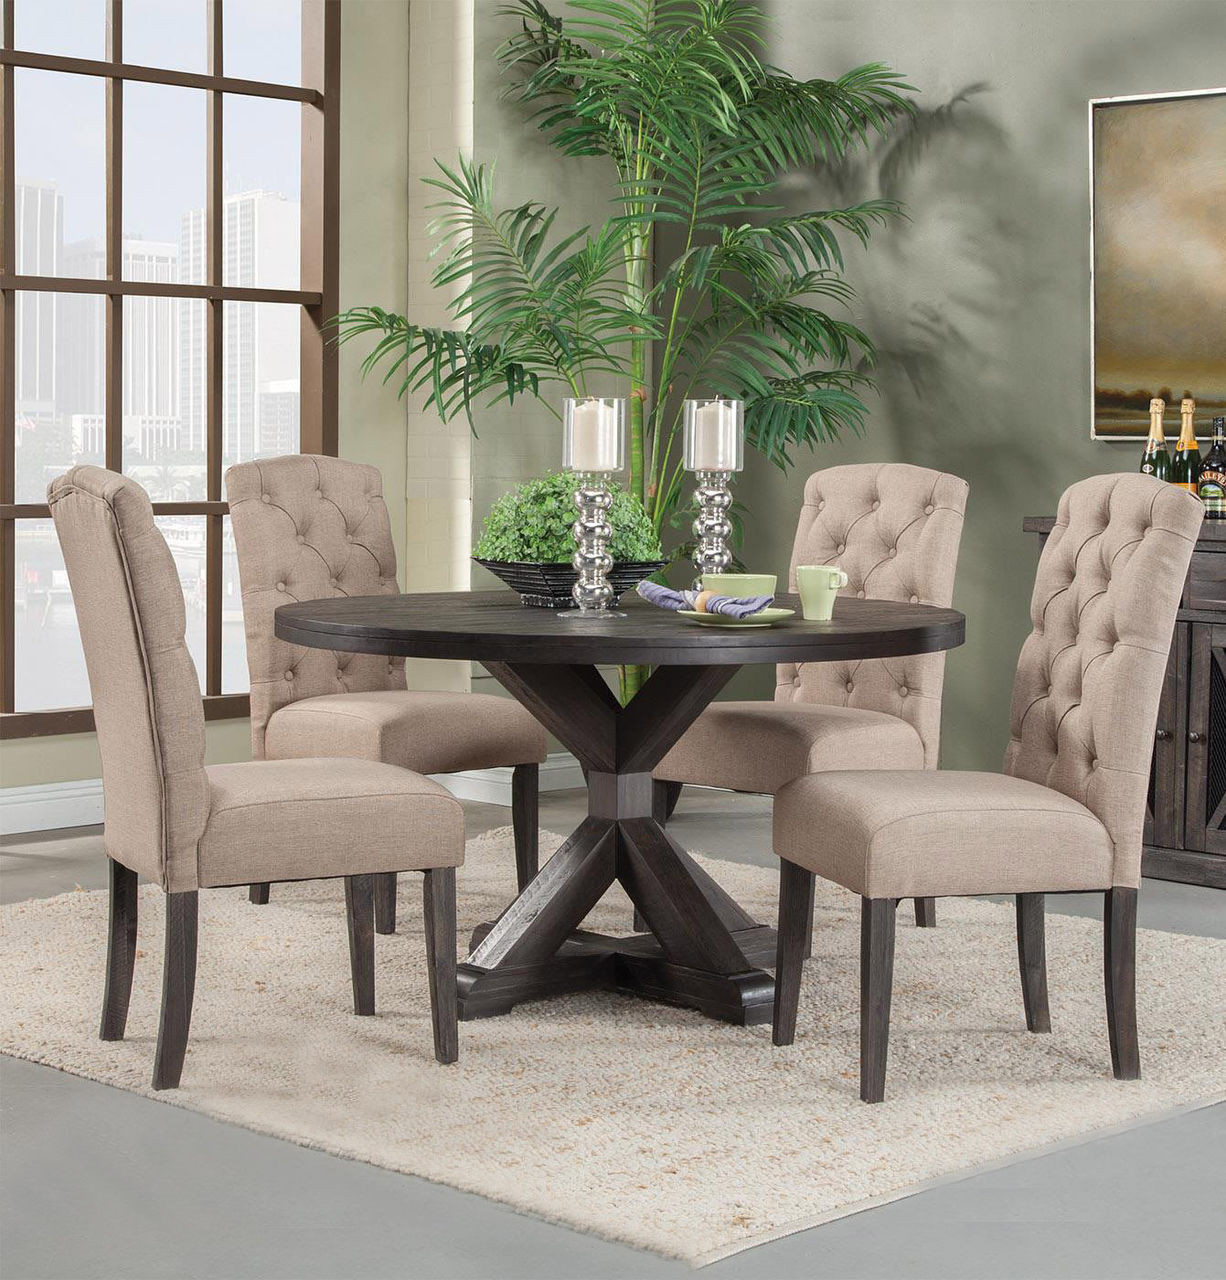 Alpine newberry 54 round dining room table set in for Dining room tables 54 inches long